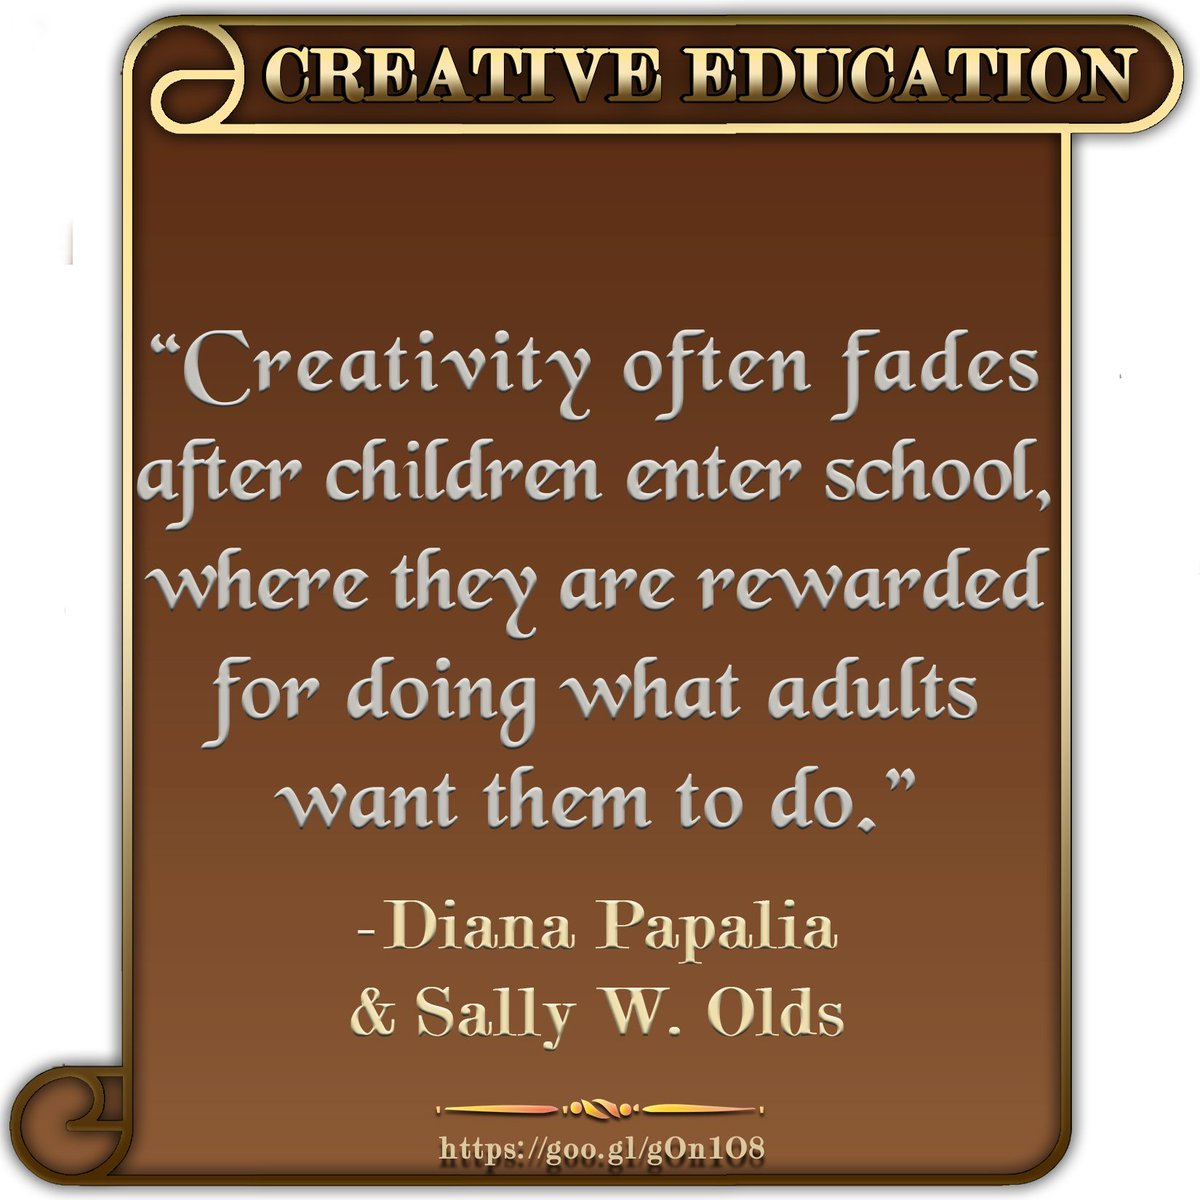 CREATIVE #EDUCATION: How Shall We Educate for Creativity?  http:// bit.ly/2lUKS5O  &nbsp;   #teachers #college #science #research #discovery #technology #mathematics #criticalthinking  #innovation #creativity #Spirituality #selfies #education #Psychology #millennials #boomers #diversity<br>http://pic.twitter.com/lzmqi90jOV